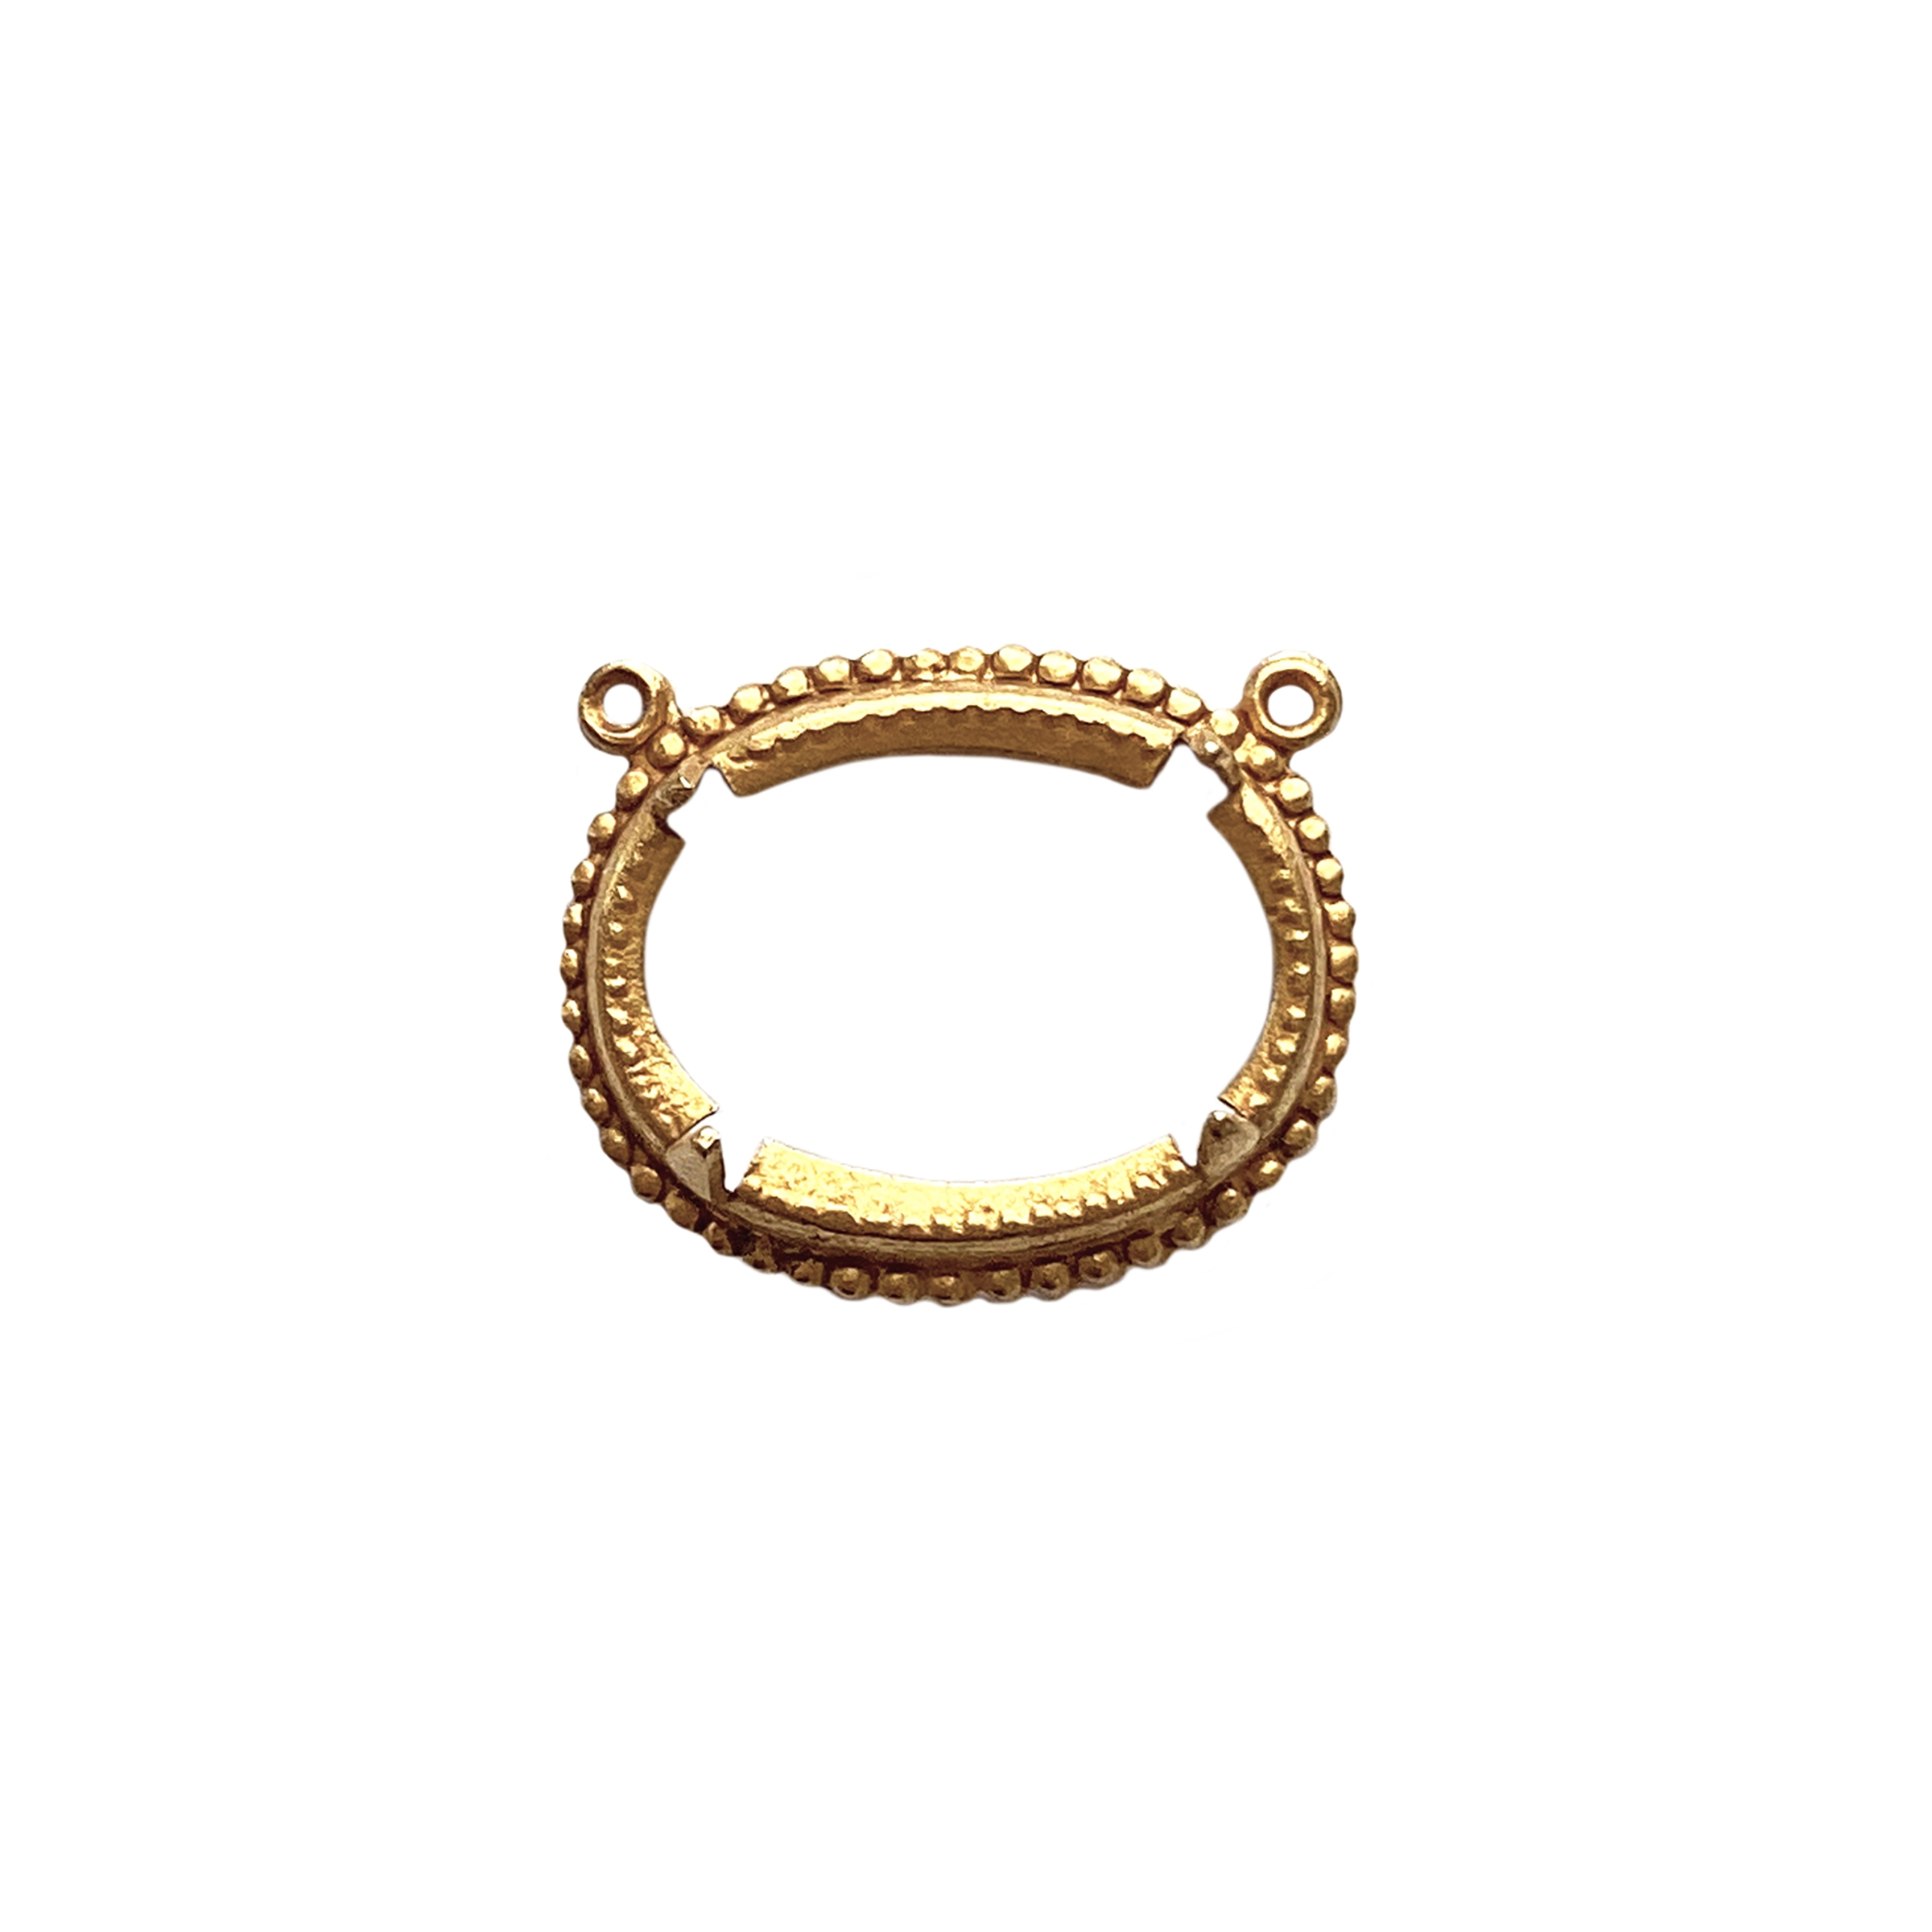 rope design backless bezel pendant, pendant, classic gold finish, bezel, bezel pendant, rope design, gold, backless bezel, brass, 18x13mm mount, US-made, nickel-free, jewelry supplies, vintage supplies, bezel pendant, B'sue Boutiques, classic gold, 01703